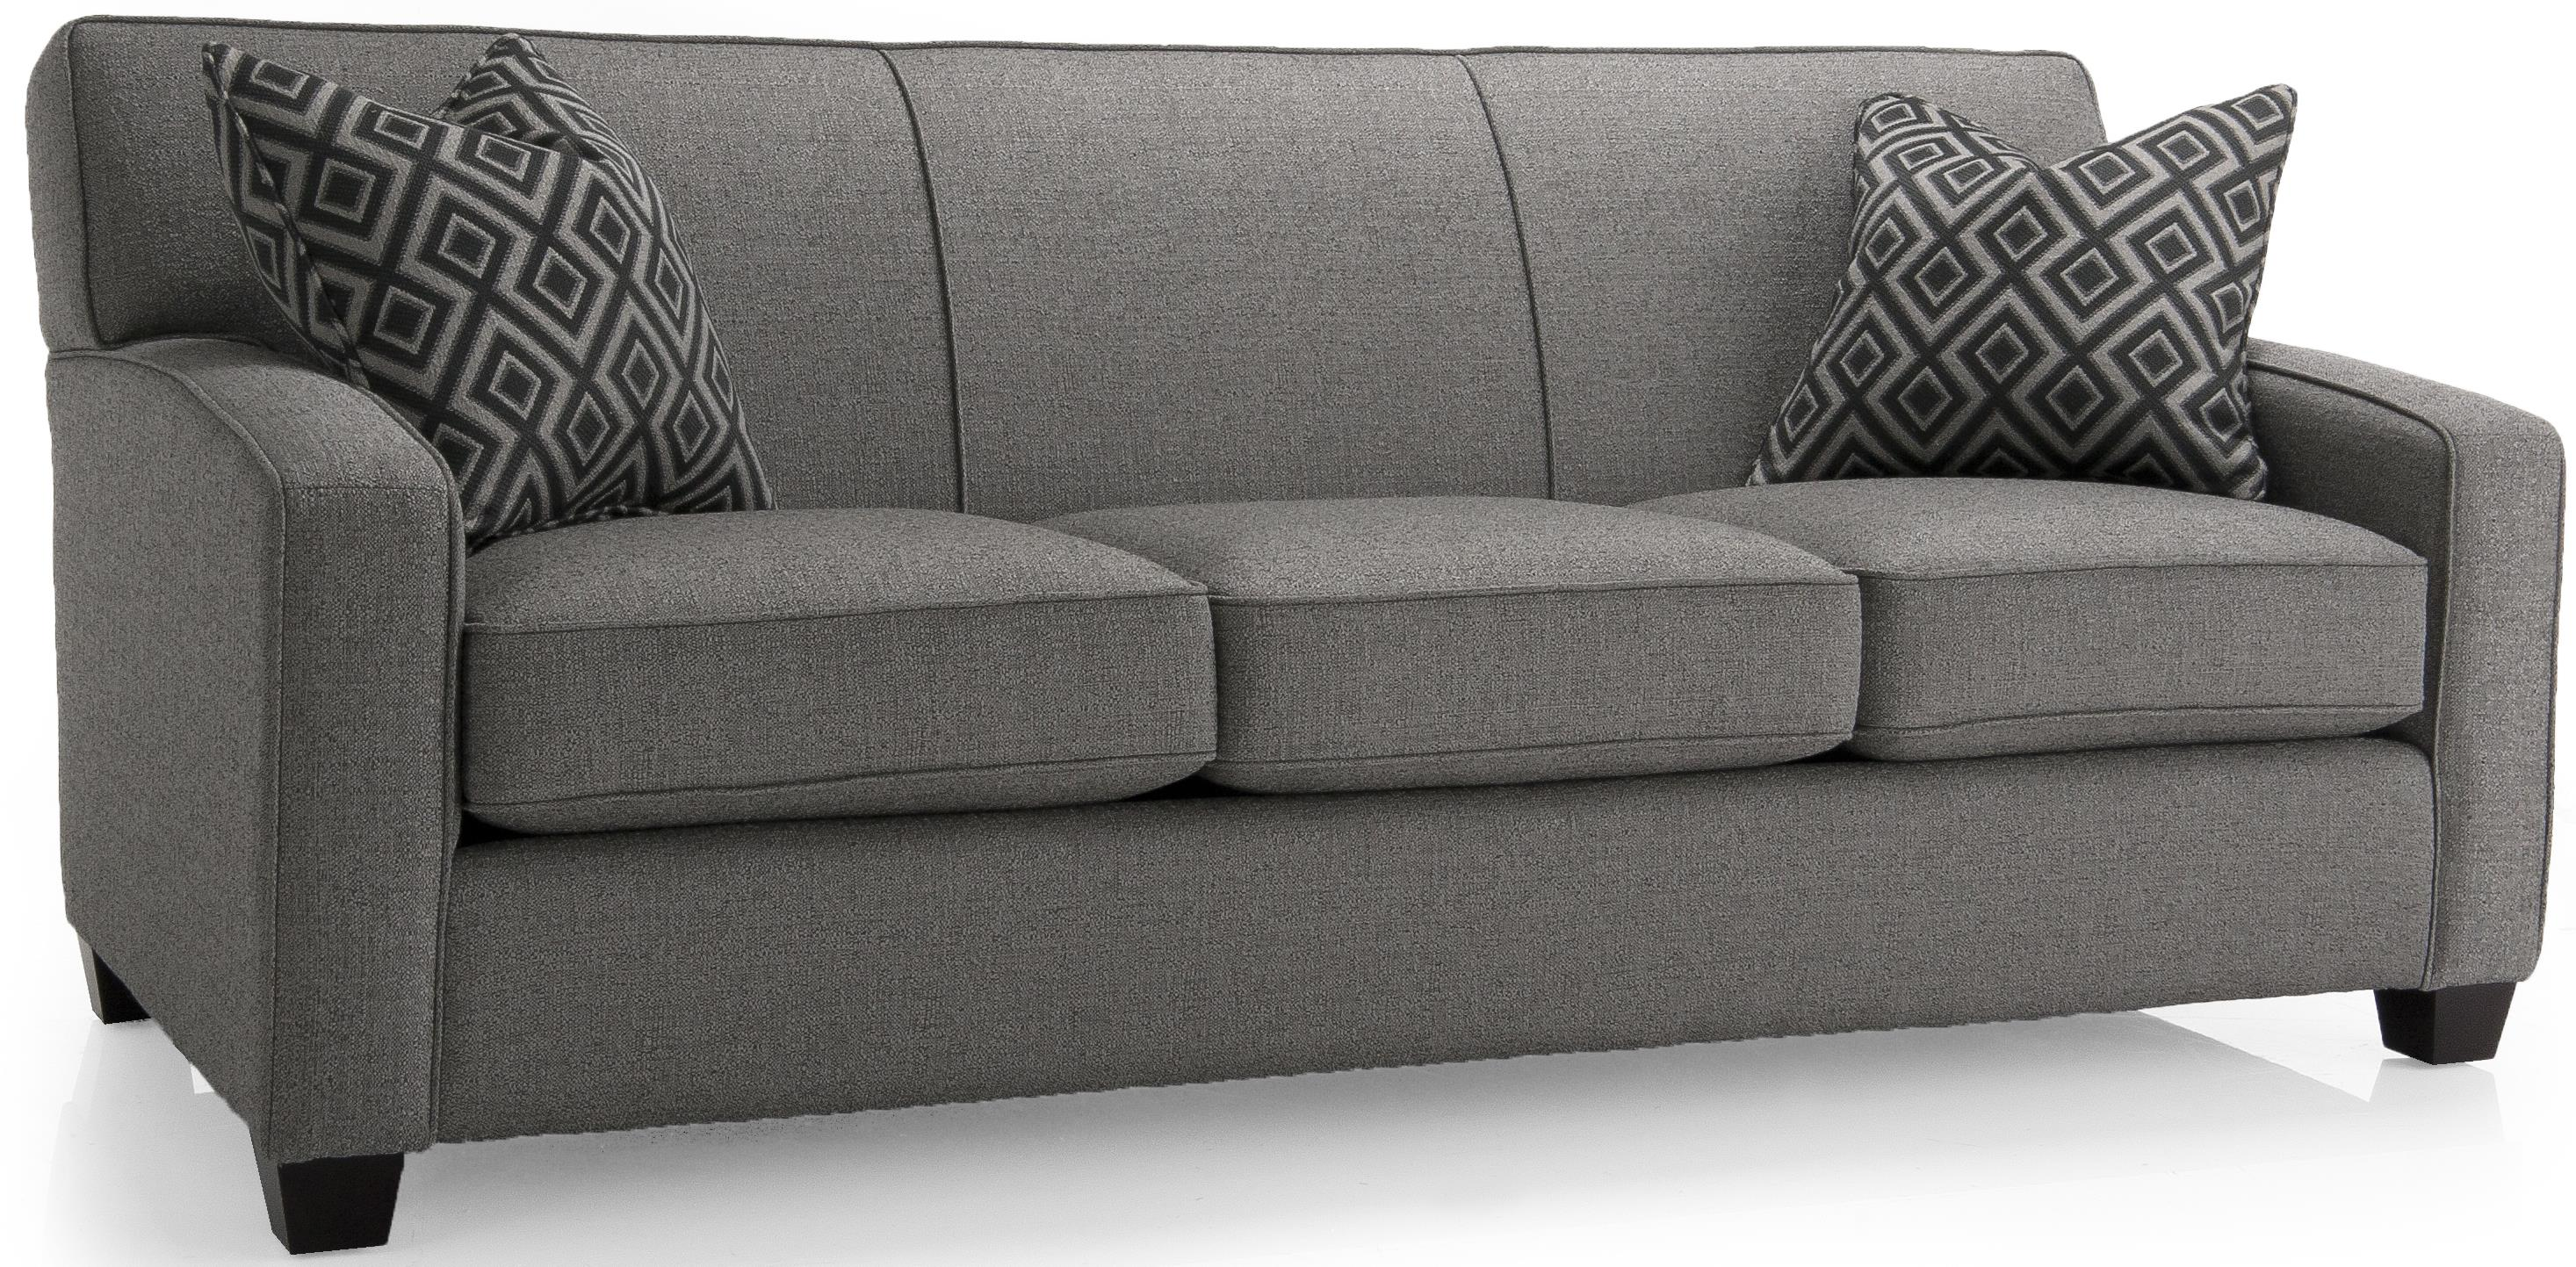 Decor-Rest 2401 Stationary Sofa - Item Number: 2401S